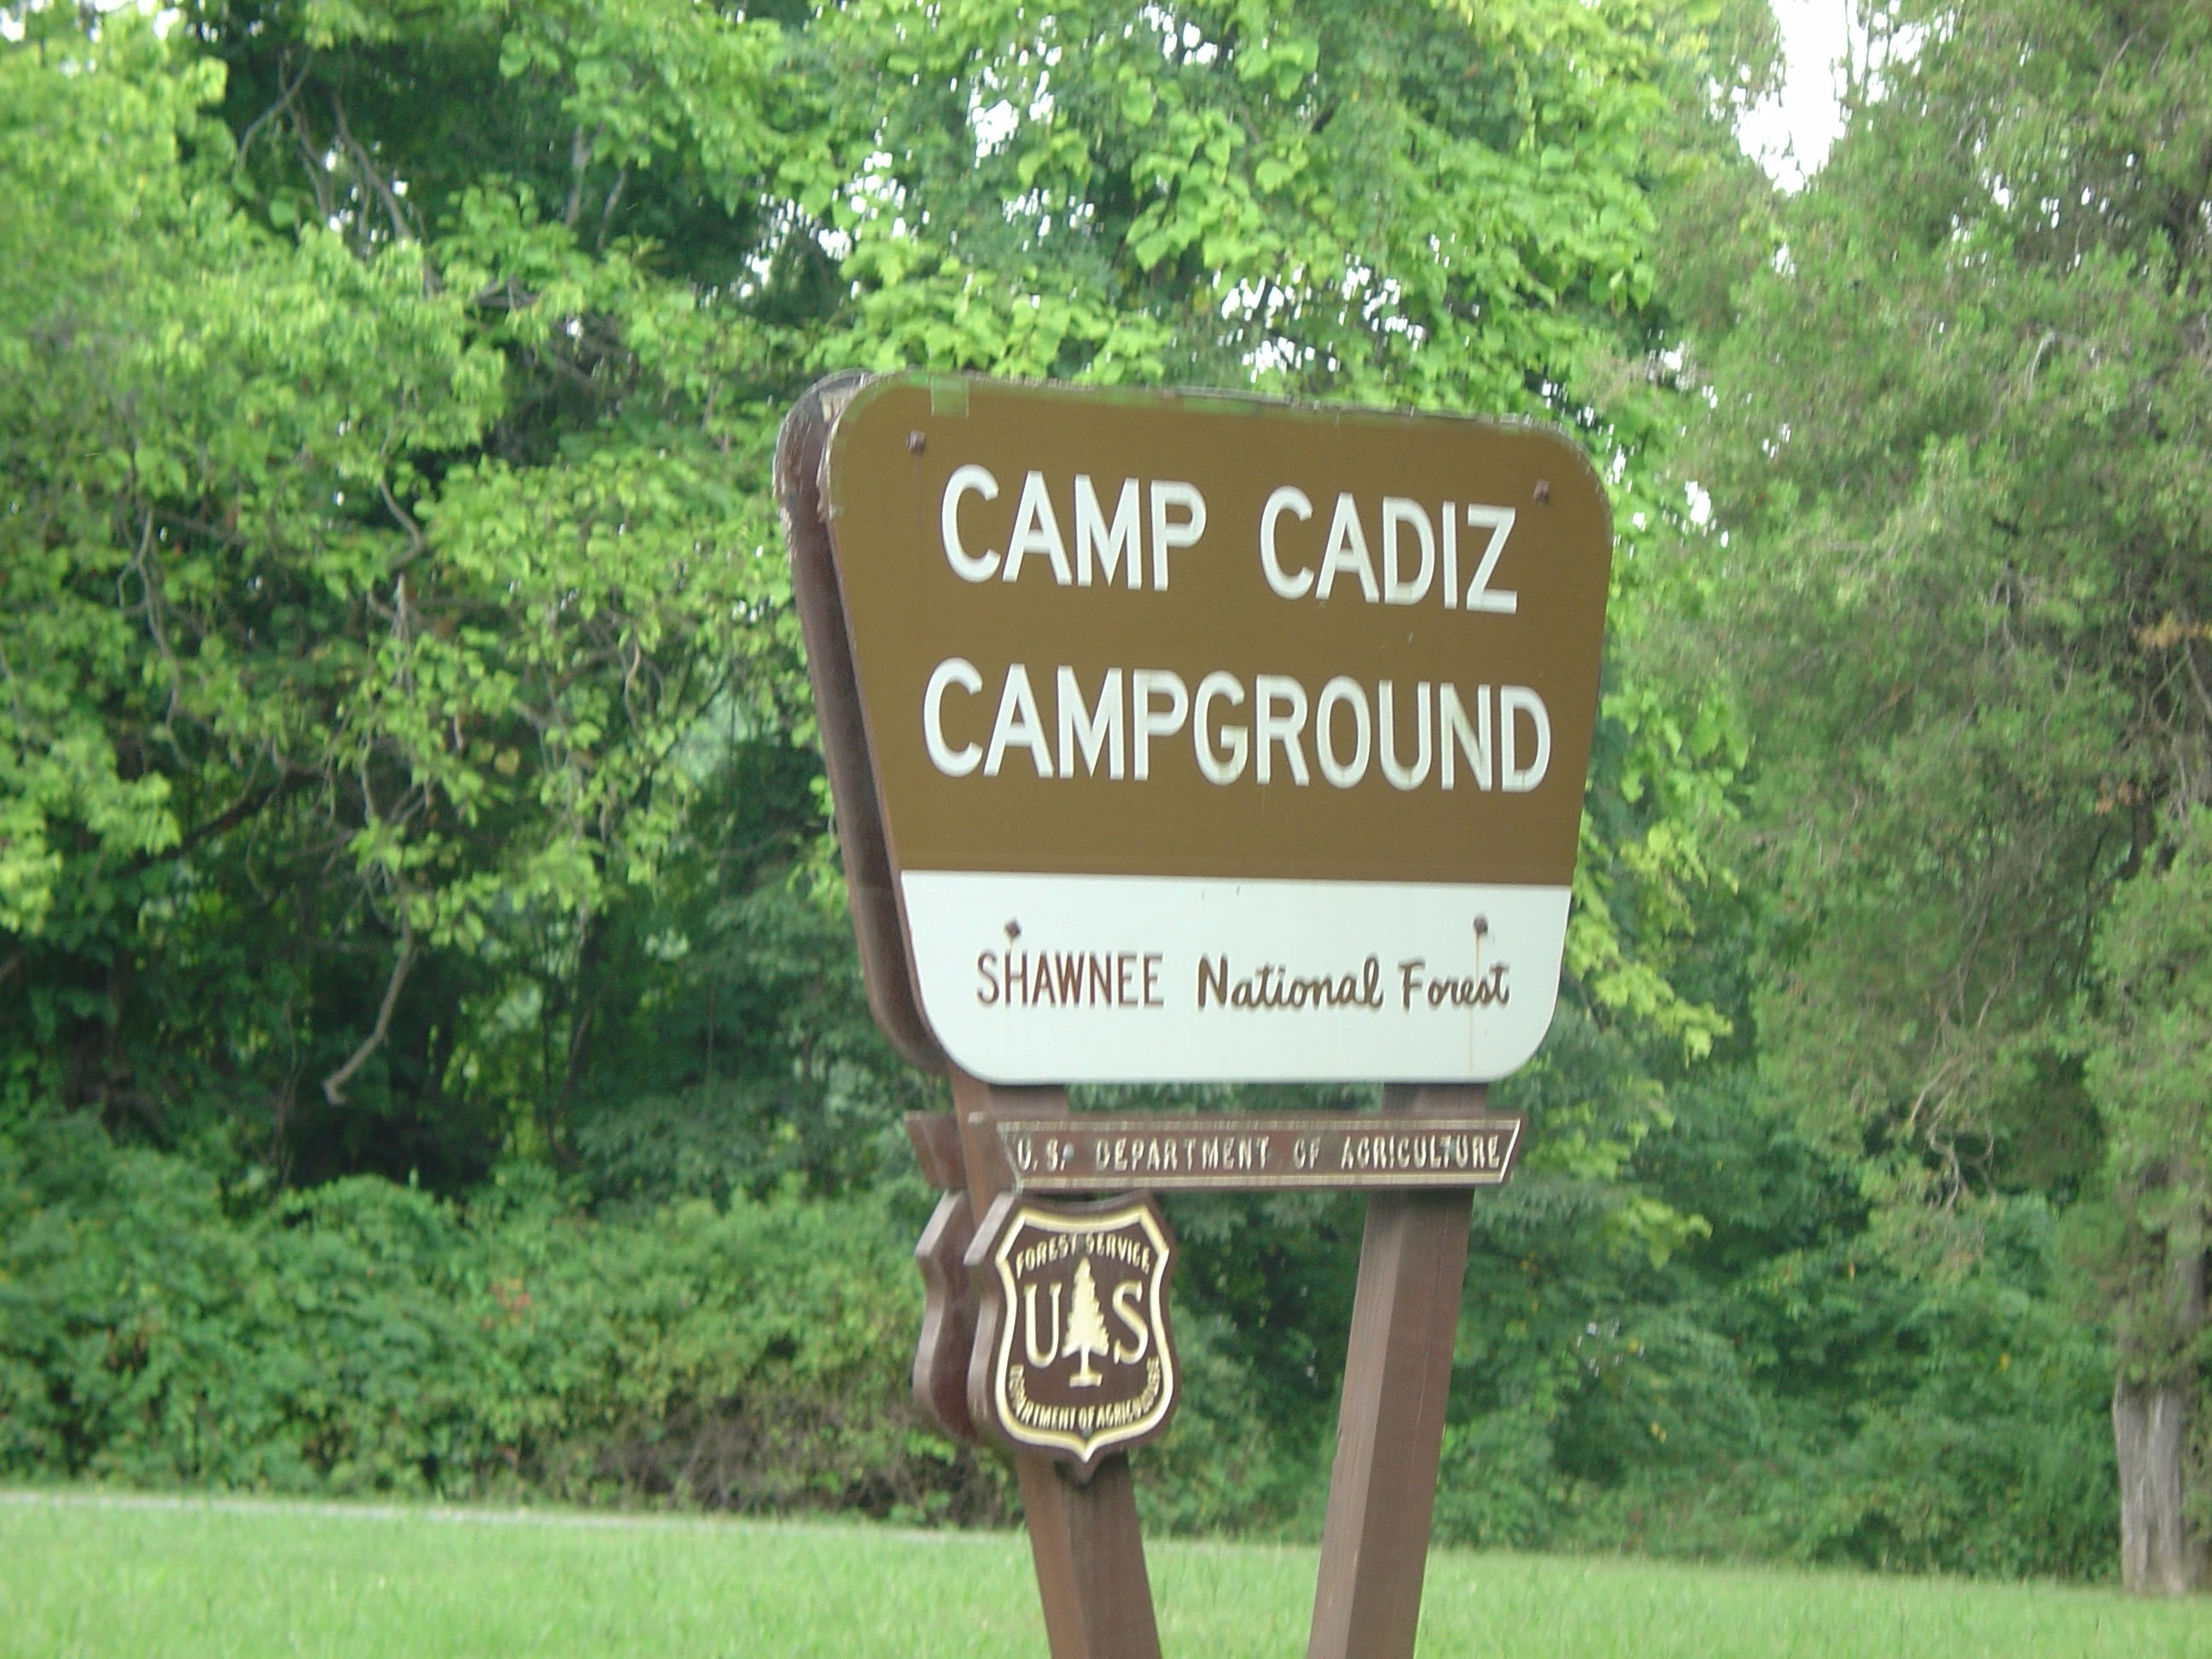 Image of Camp Cadiz